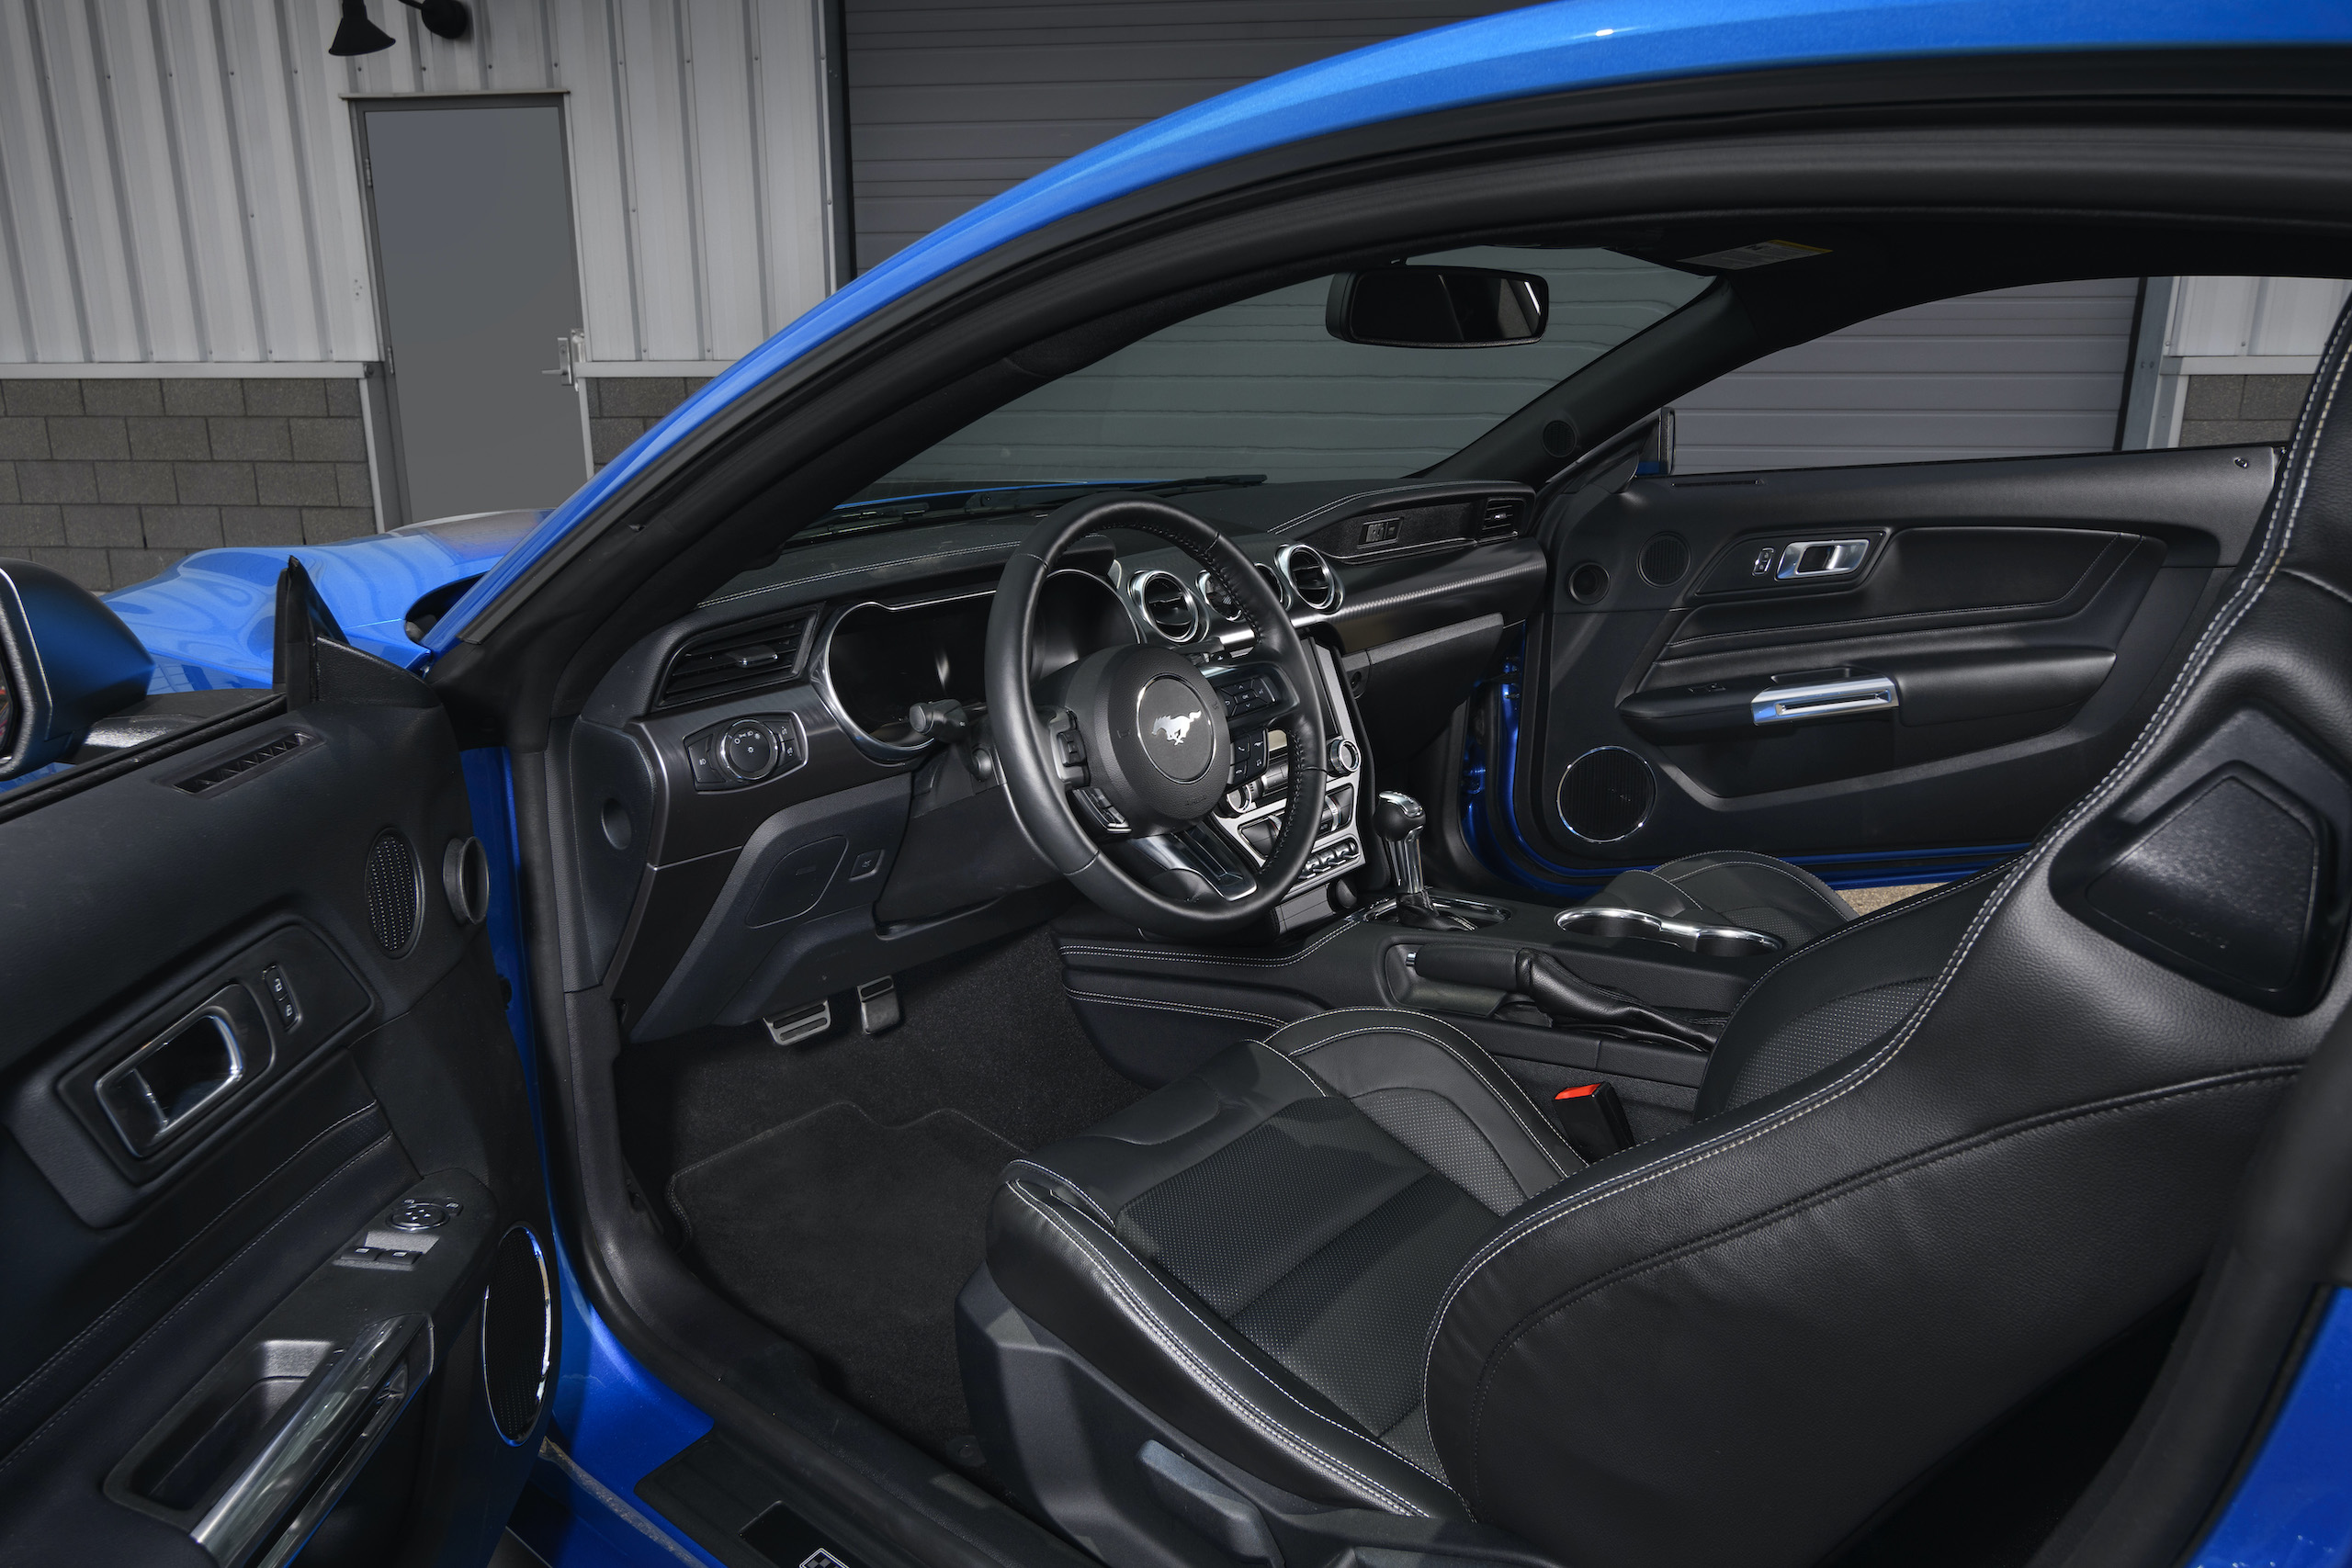 2021 Mustang Mach 1 blue interior driver side